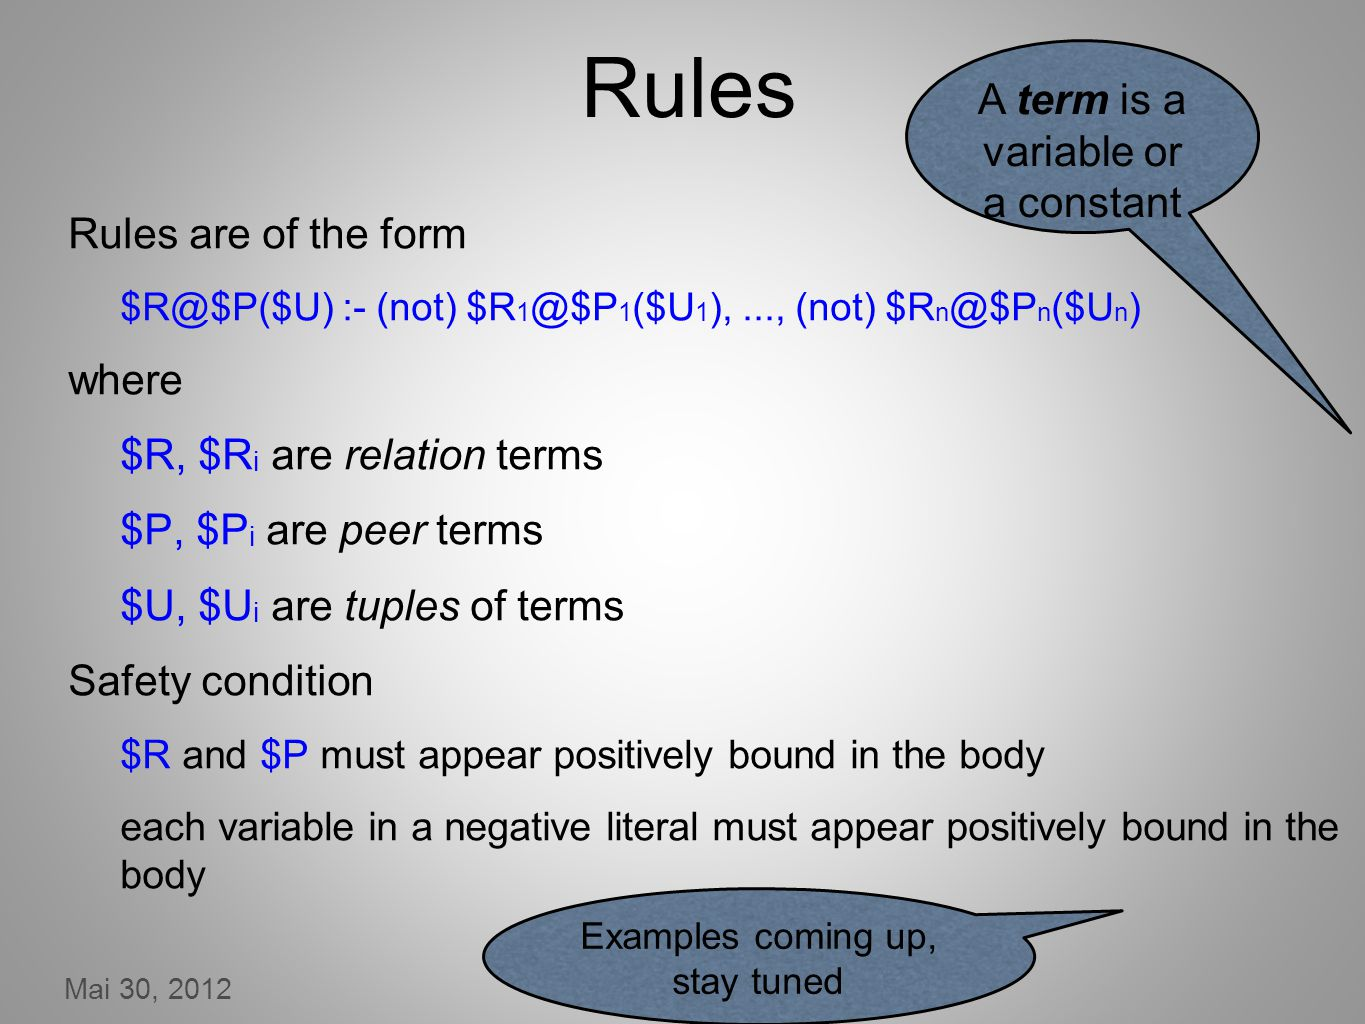 Mai 30, 2012 19 Rules Rules are of the form $R@$P($U) :- (not) $R 1 @$P 1 ($U 1 ),..., (not) $R n @$P n ($U n ) where $R, $R i are relation terms $P, $P i are peer terms $U, $U i are tuples of terms Safety condition $R and $P must appear positively bound in the body each variable in a negative literal must appear positively bound in the body A term is a variable or a constant Examples coming up, stay tuned